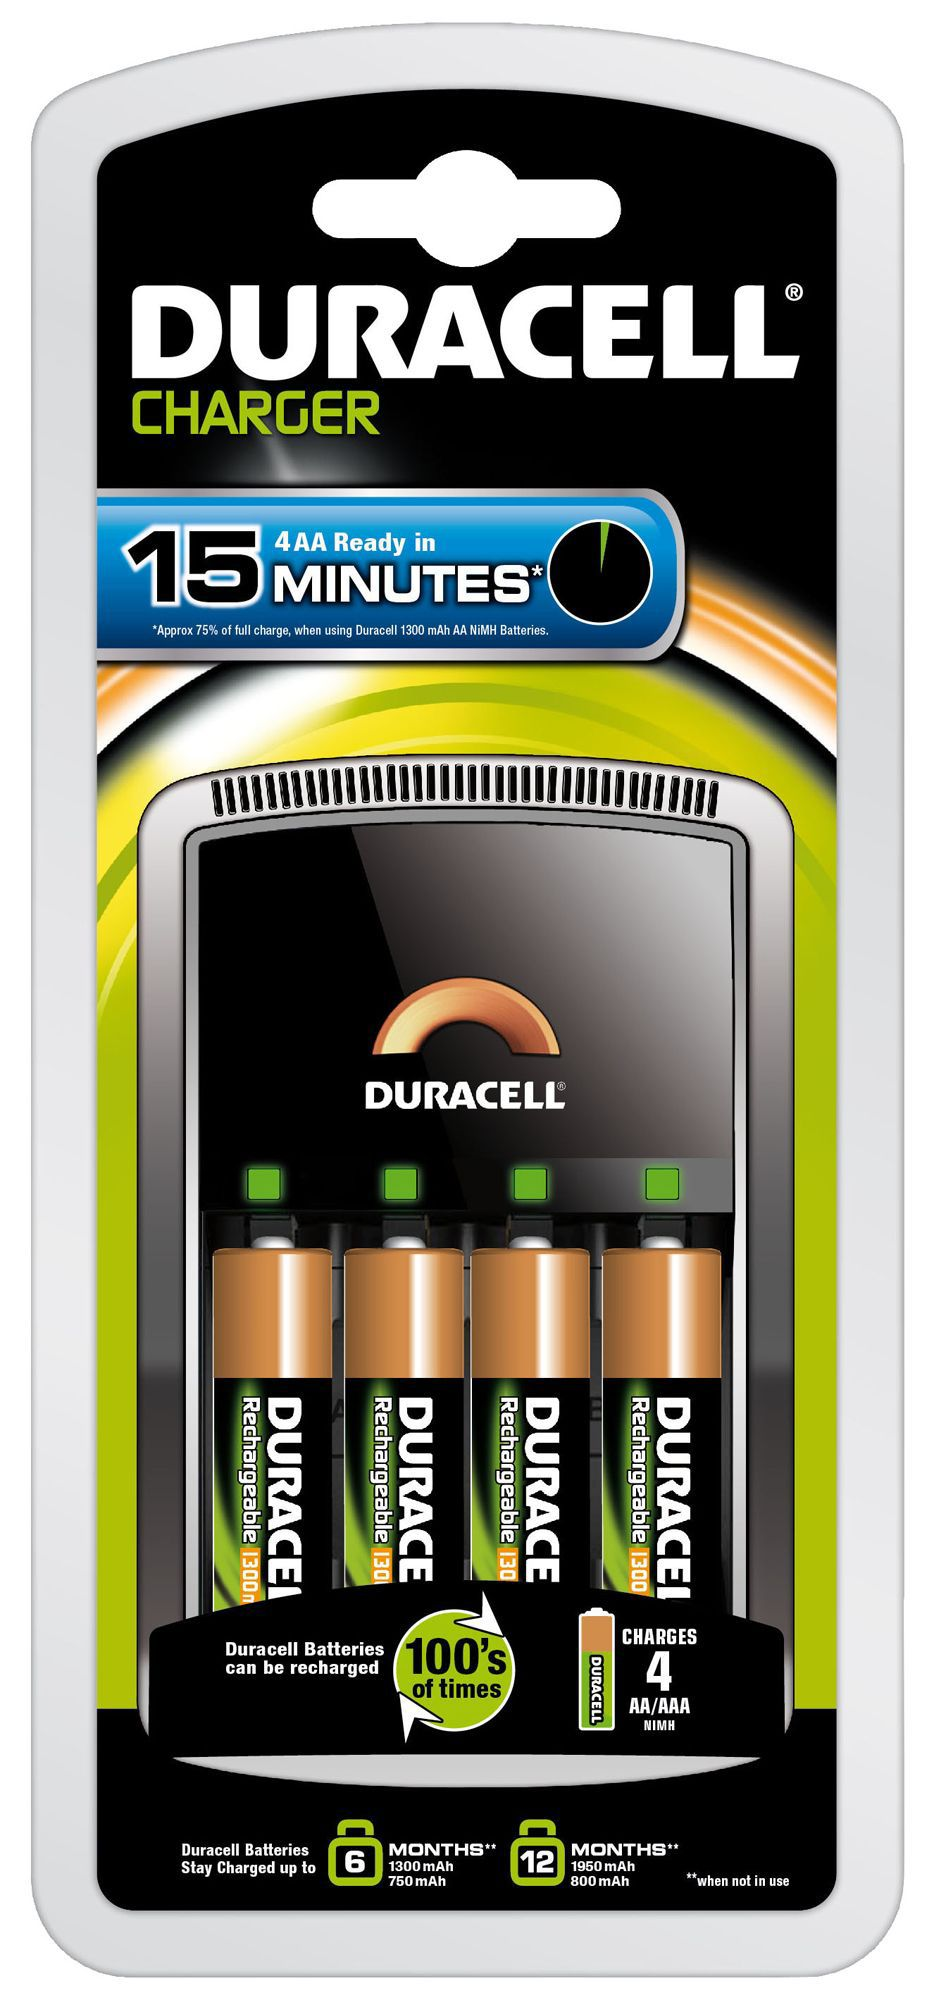 Duracell 15 Minute Battery Charger Departments Diy At B Amp Q